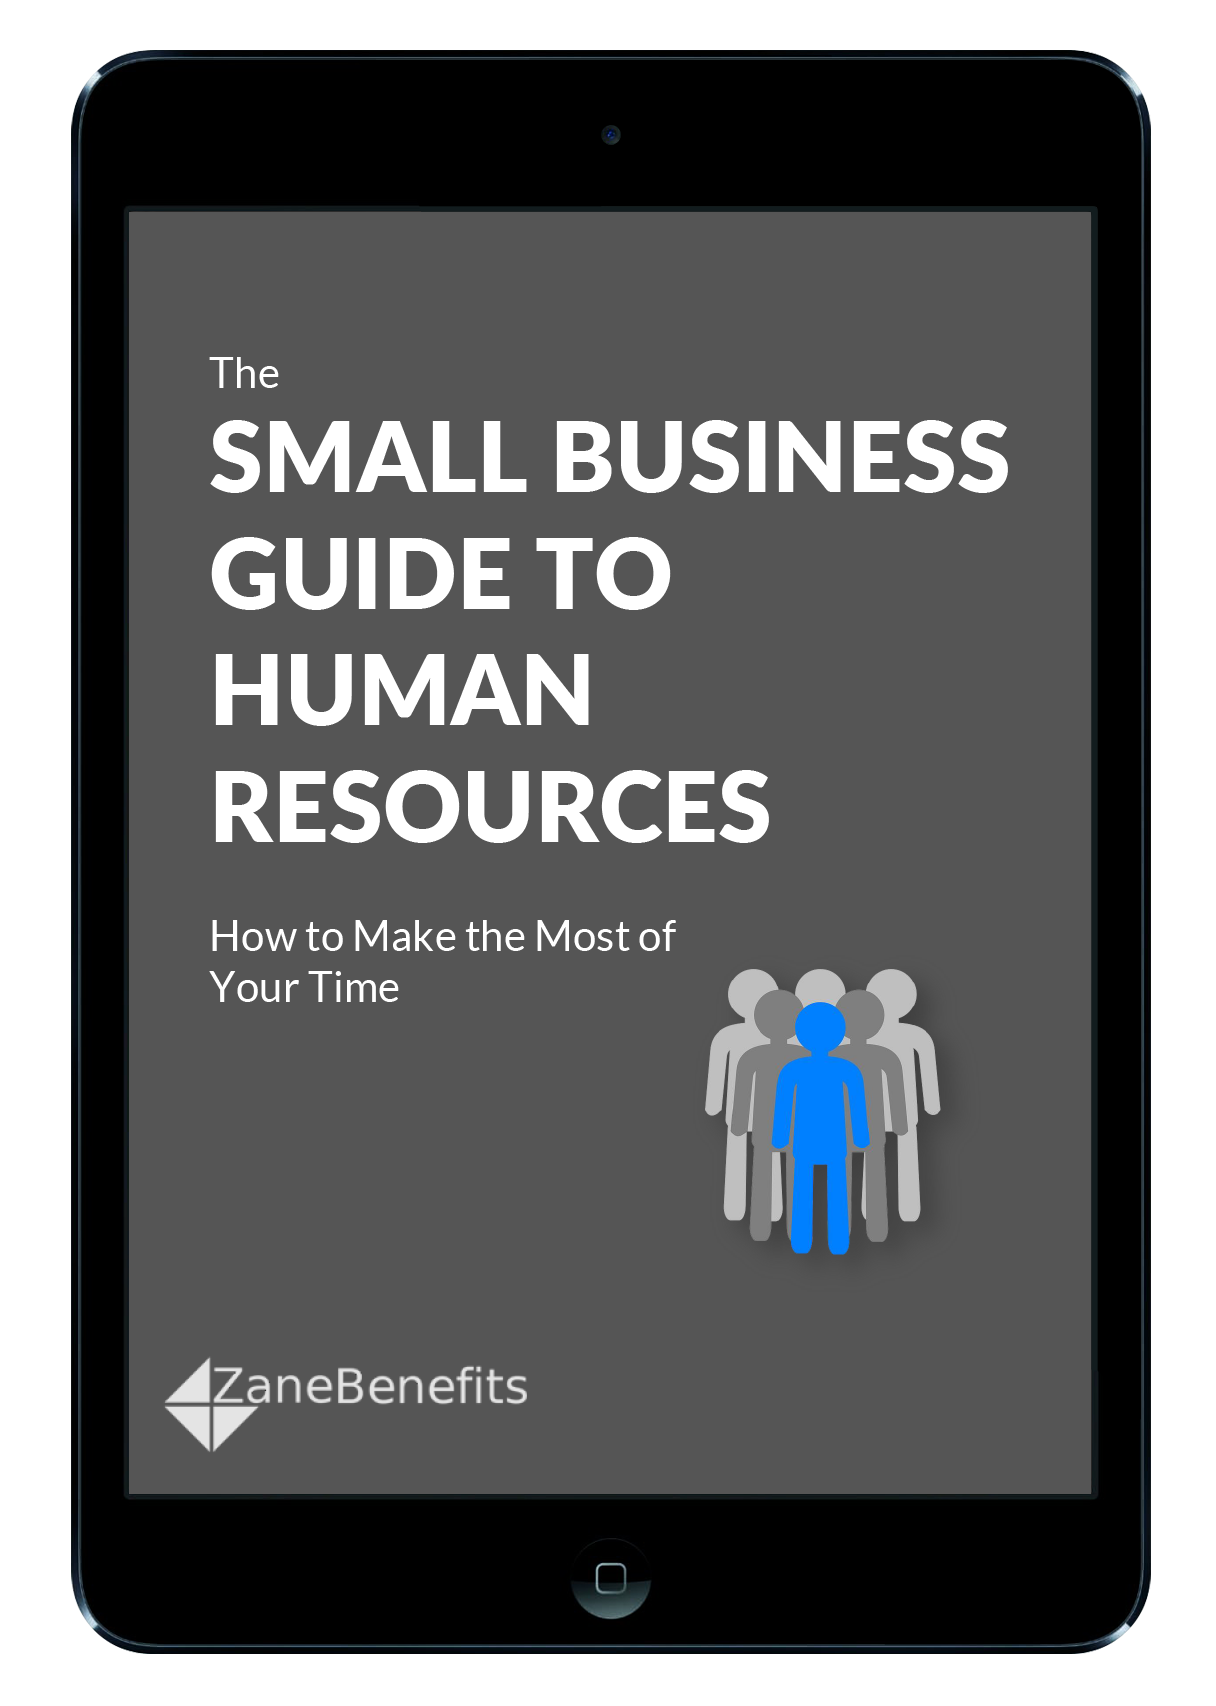 The Small Business Guide to Human Resources